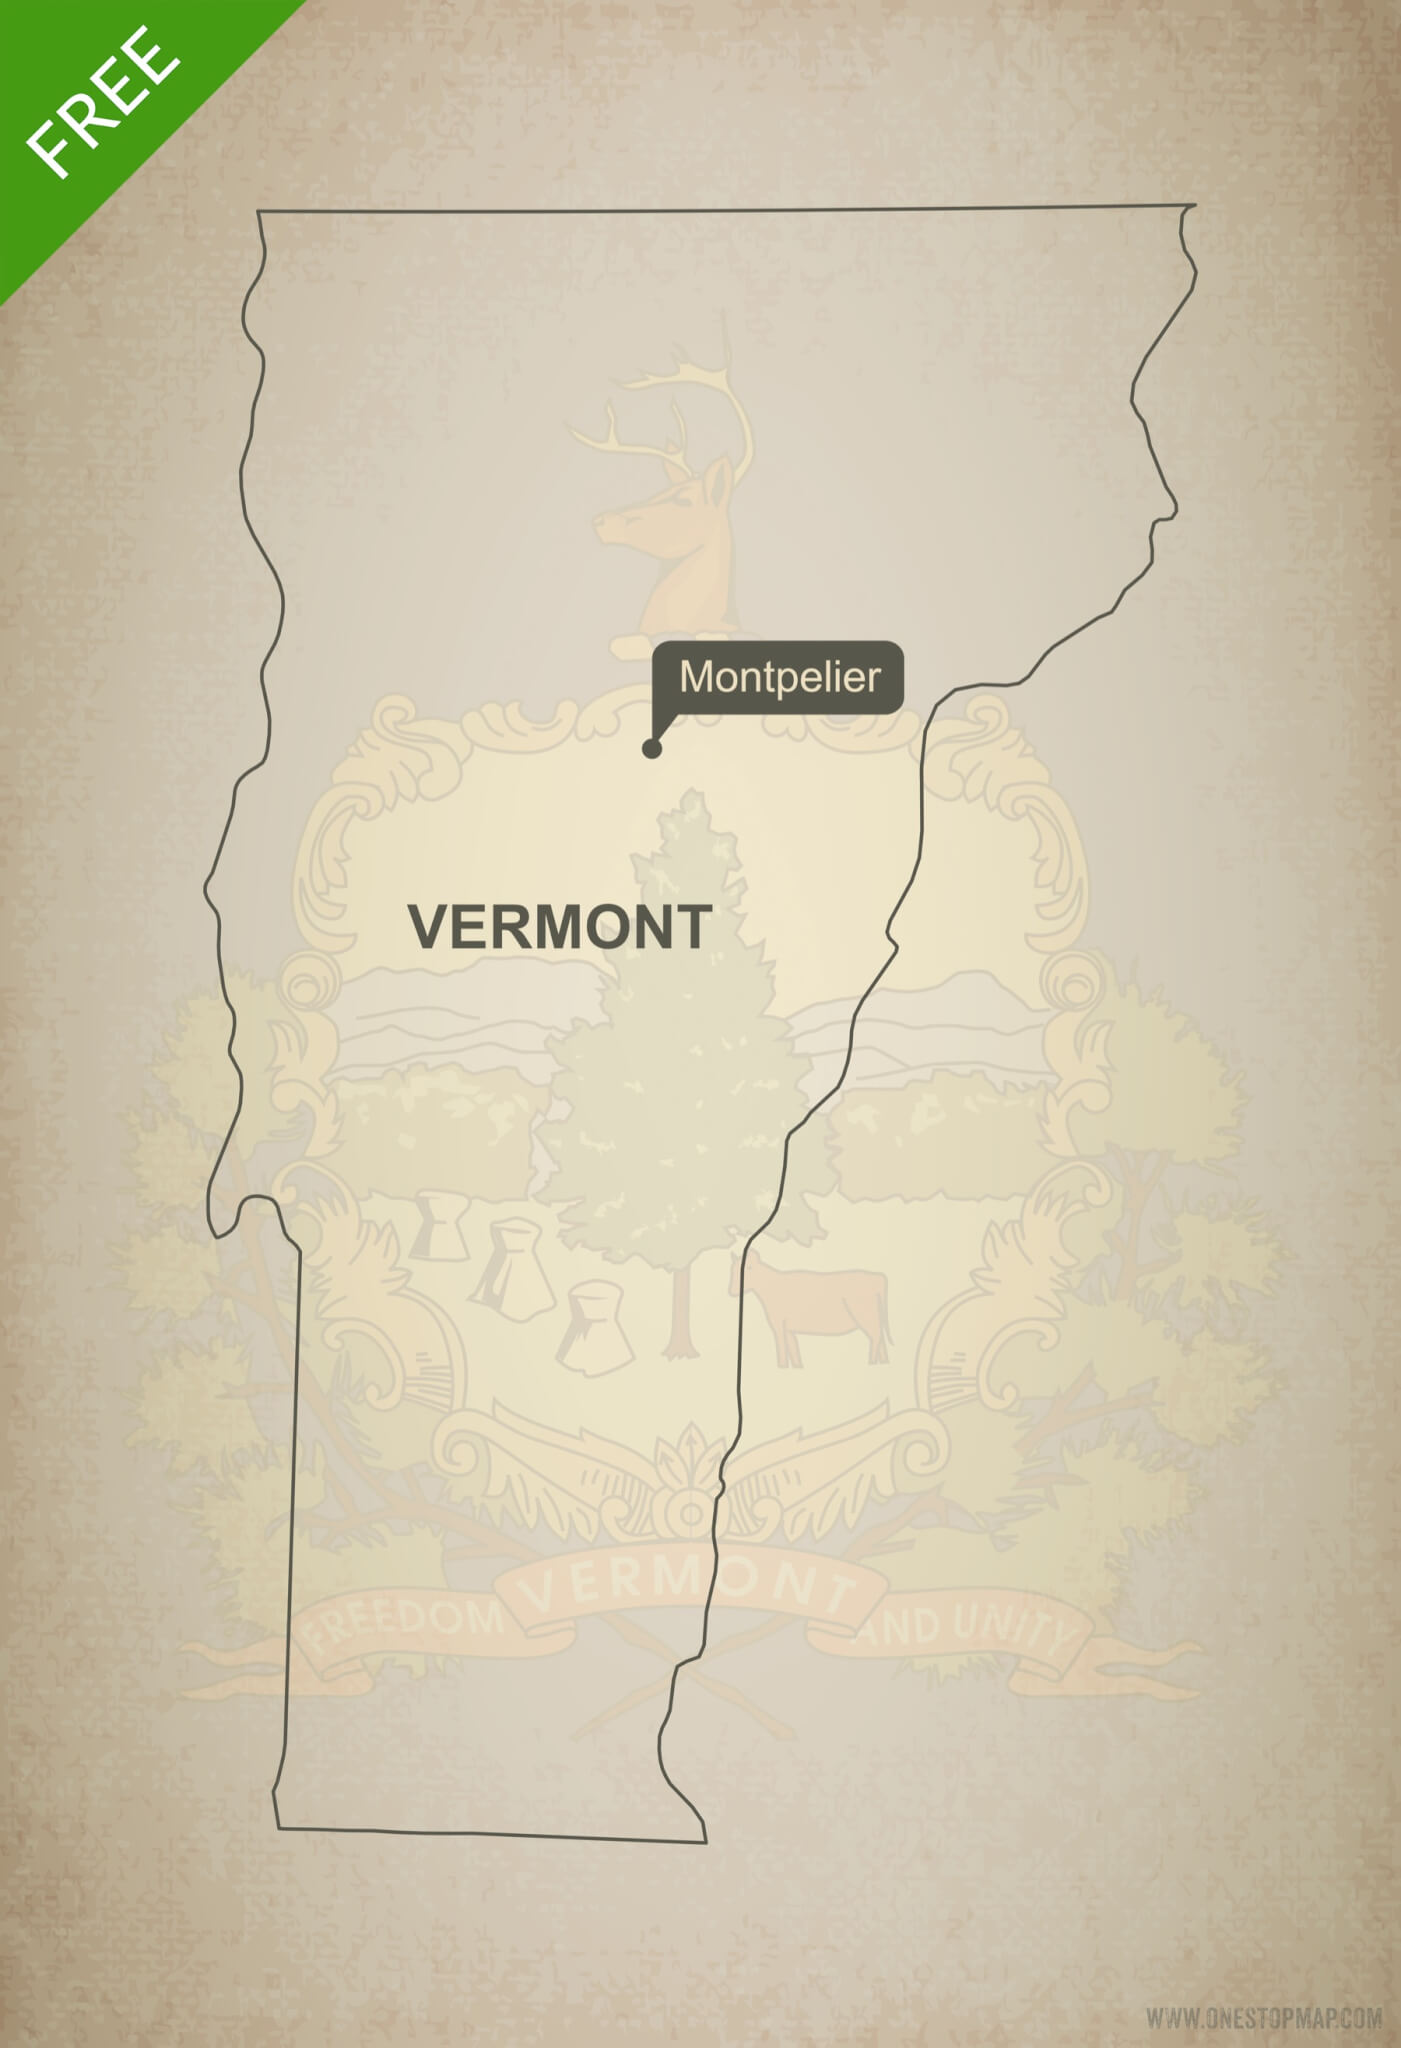 Free vector map of Vermont outline | One Stop Map